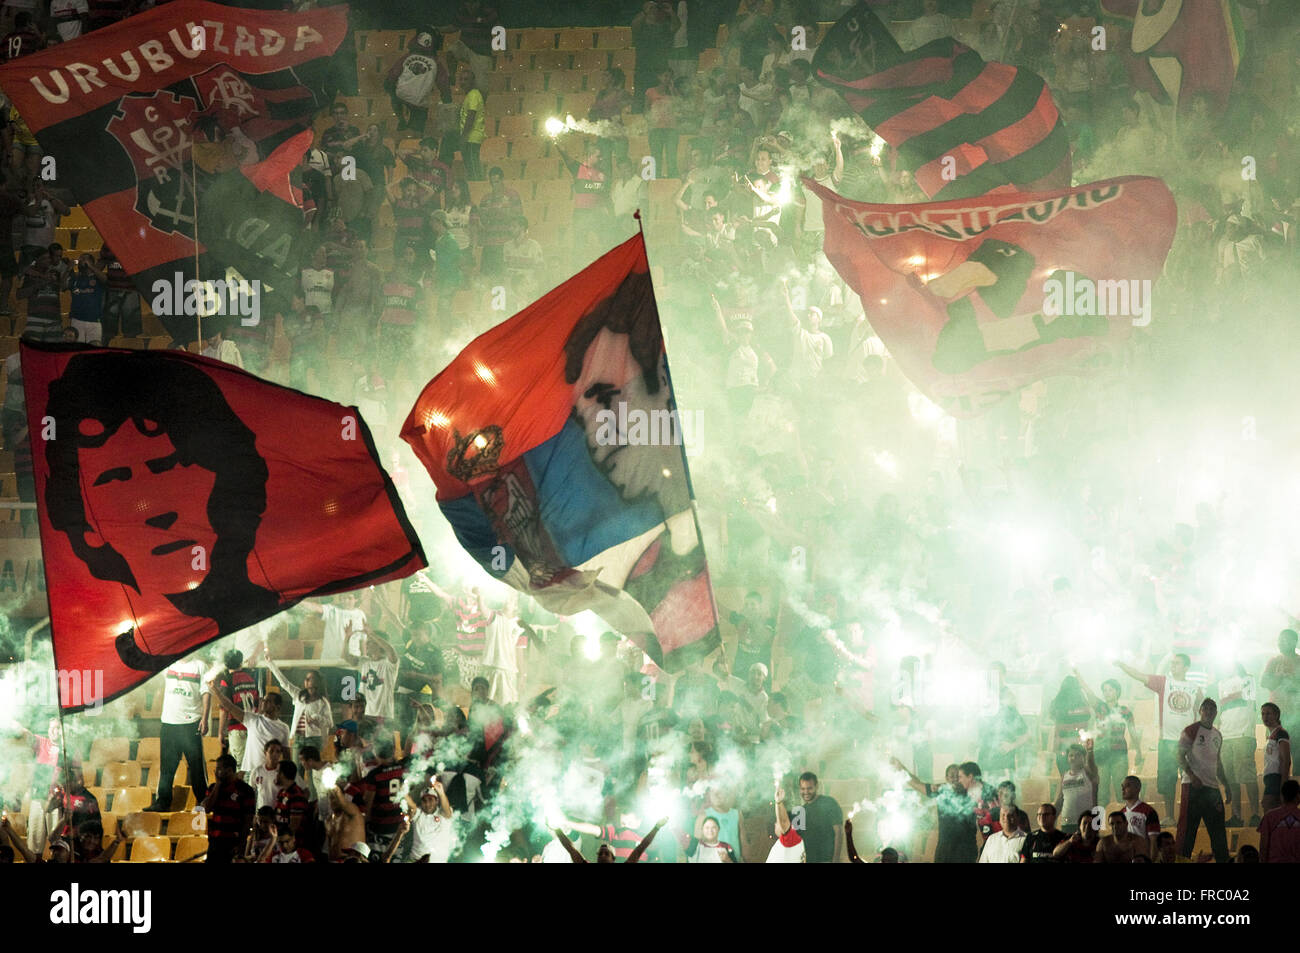 Organized fans of Flamengo - Stock Image